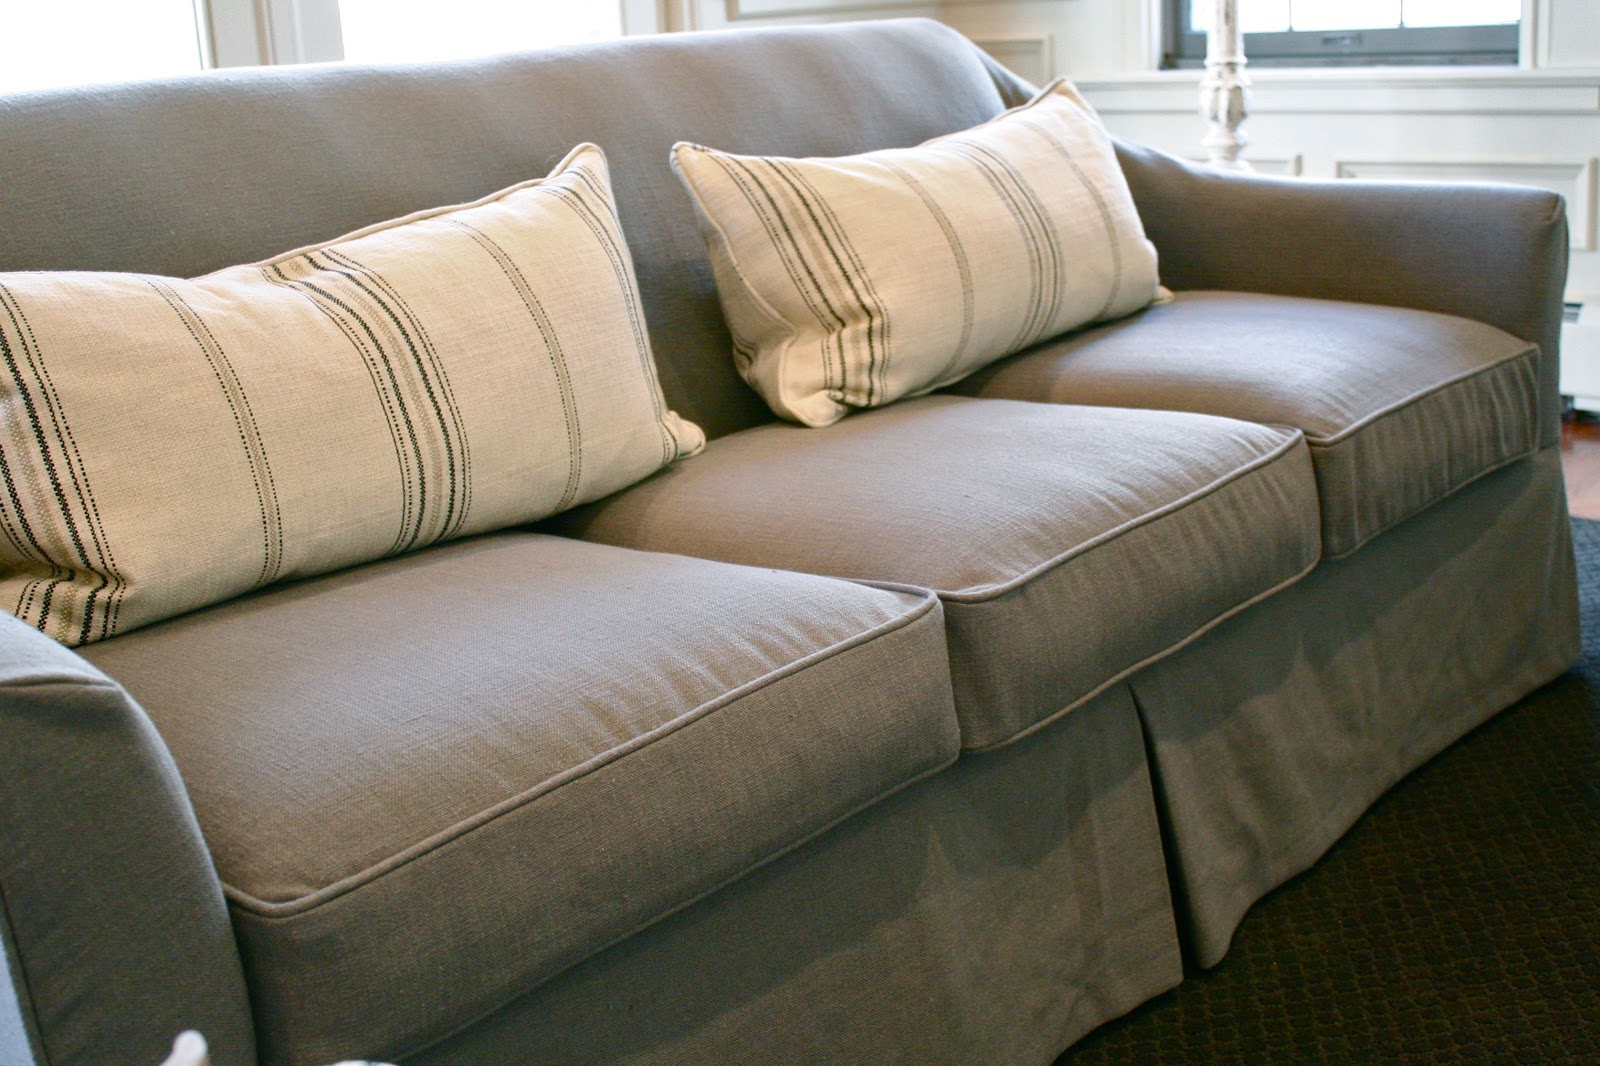 gray linen sofa slipcover sitting designs custom slipcovers by shelley waterfall skirt couch